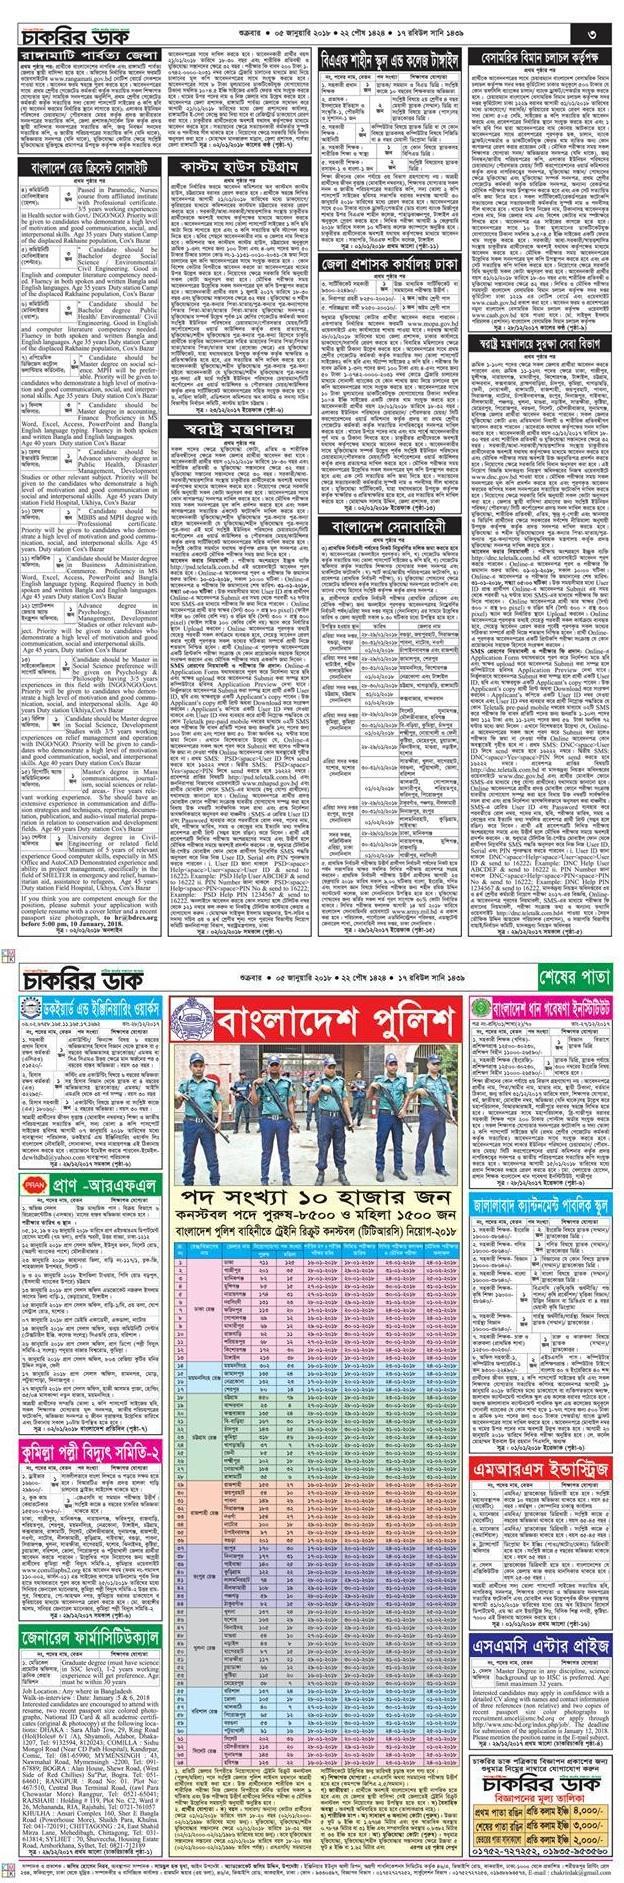 Weekly Job Newspaper January 2018